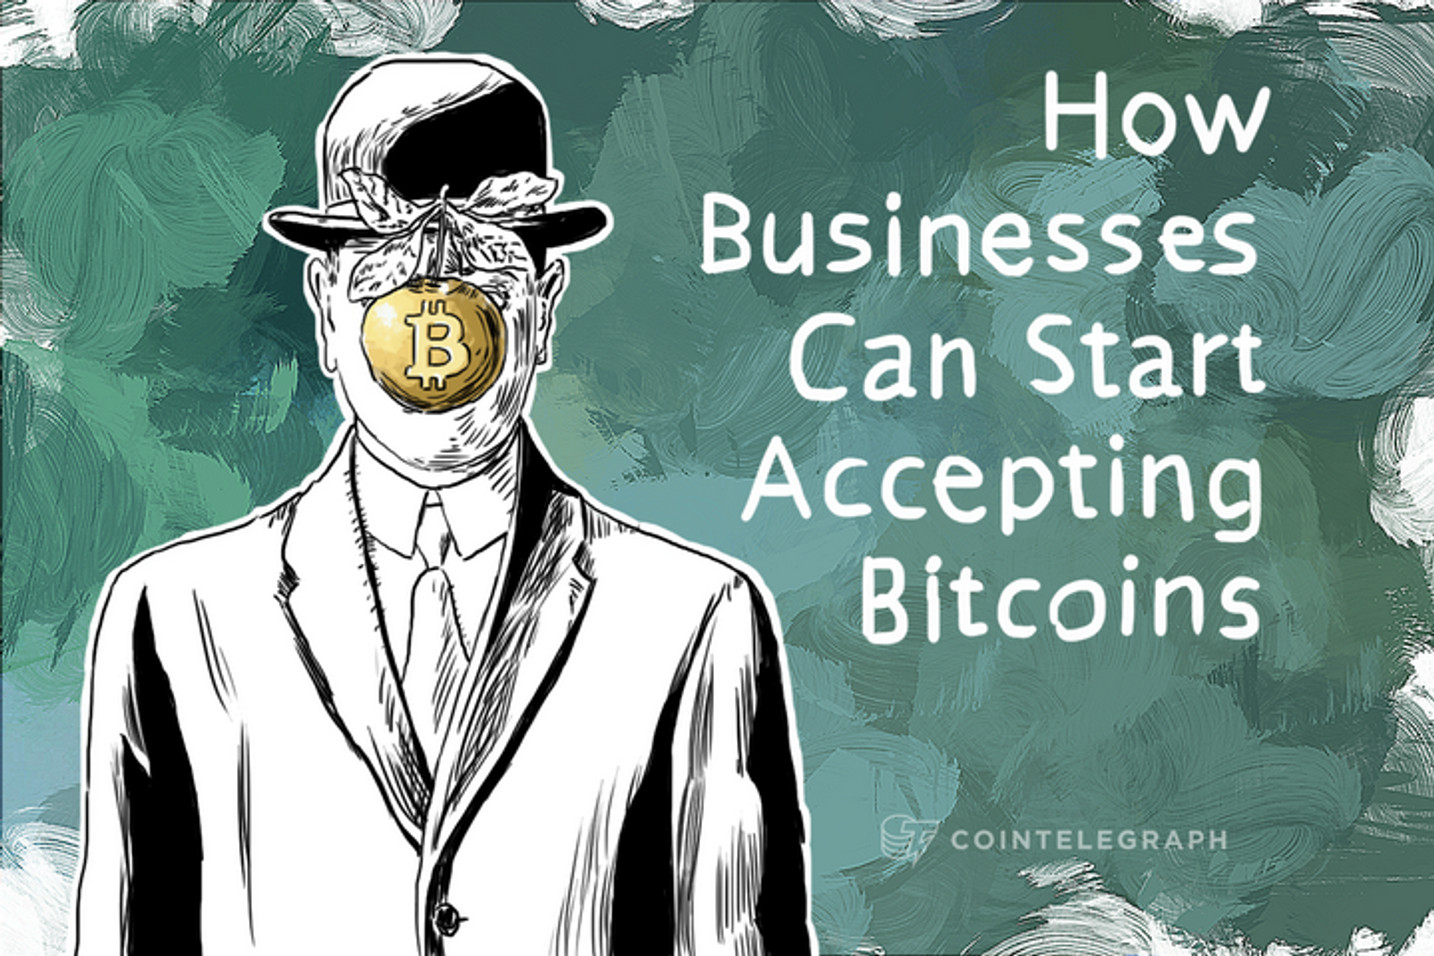 How Businesses Can Start Accepting Bitcoins